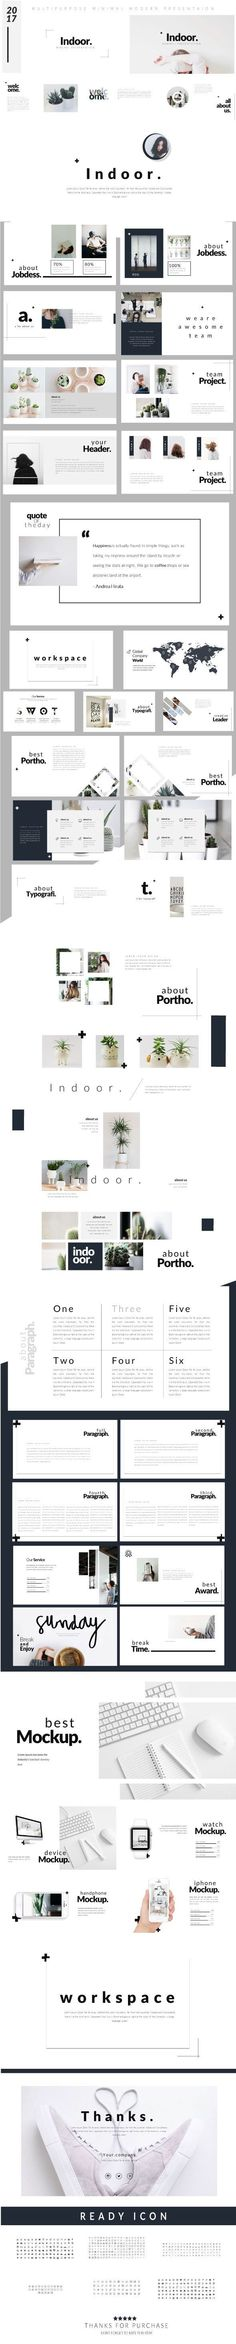 Indoor - Modern Minimal Presentation Template - Business PowerPoint Templates